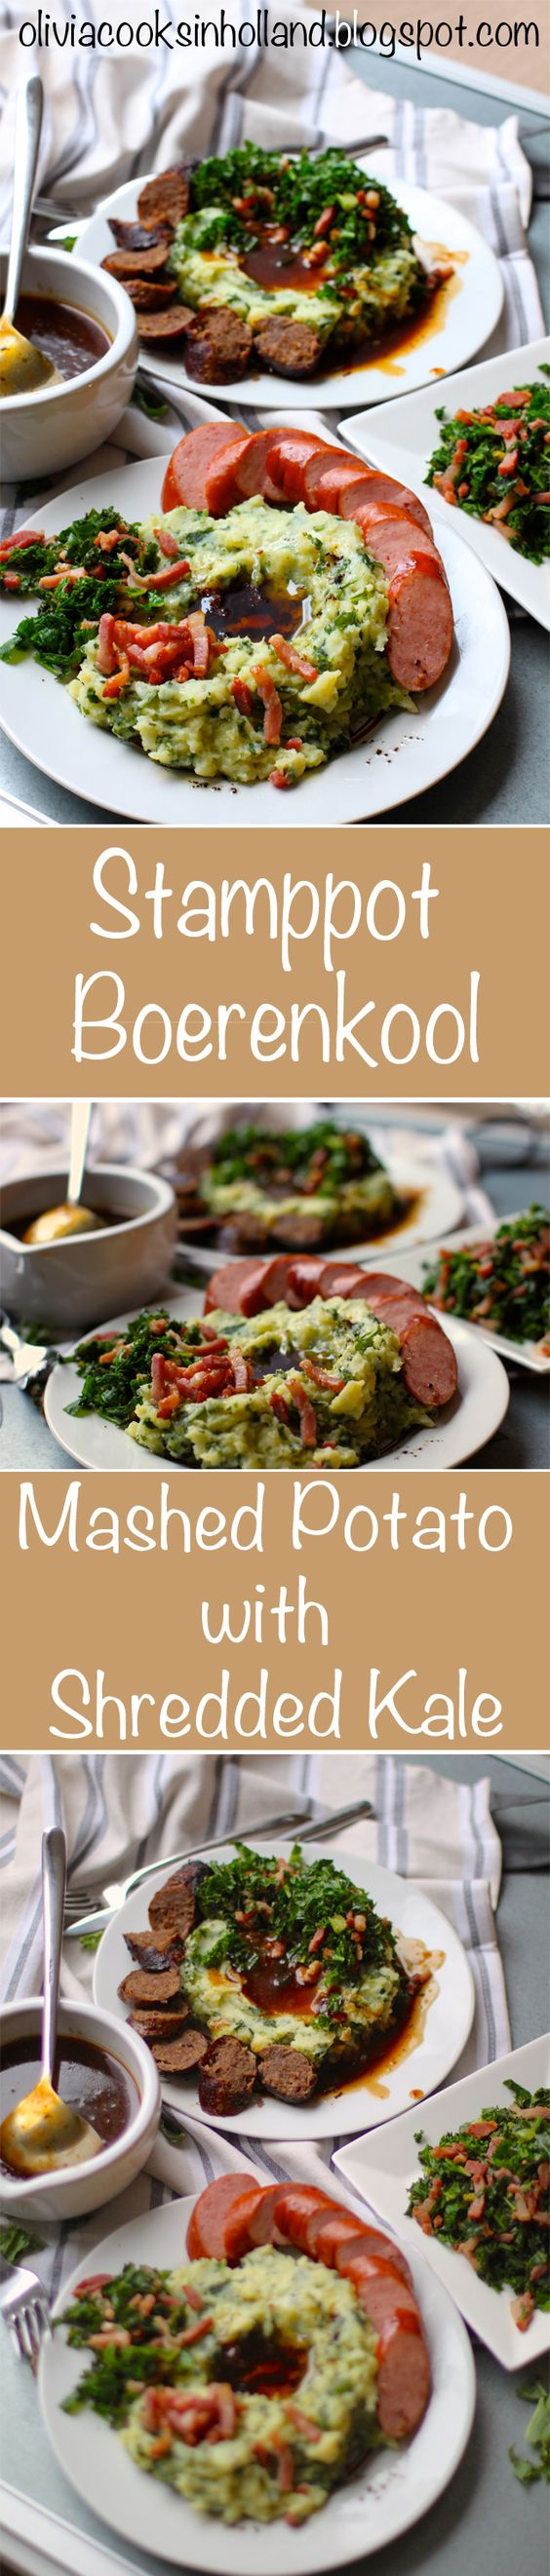 I love this! The Dutch way to cook Kale. It's delicious and easy. The mashed potato is soft and fluffy. The best dutch food for winter time.